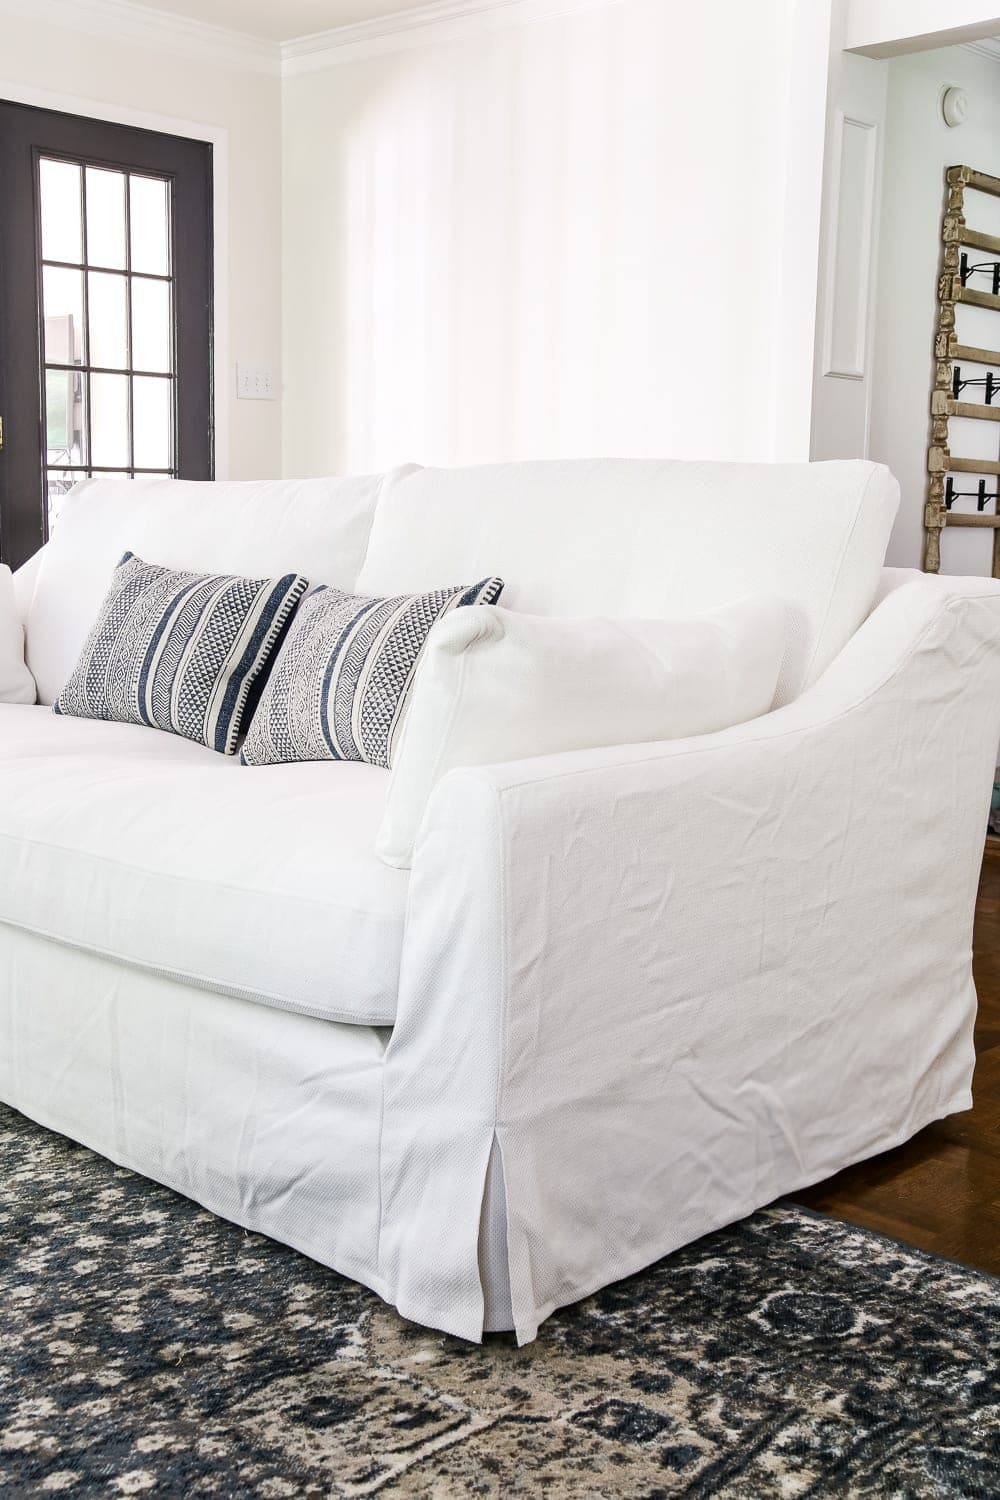 New IKEA Sofa And Chairs And How To Keep Them Clean | Blesserhouse.com